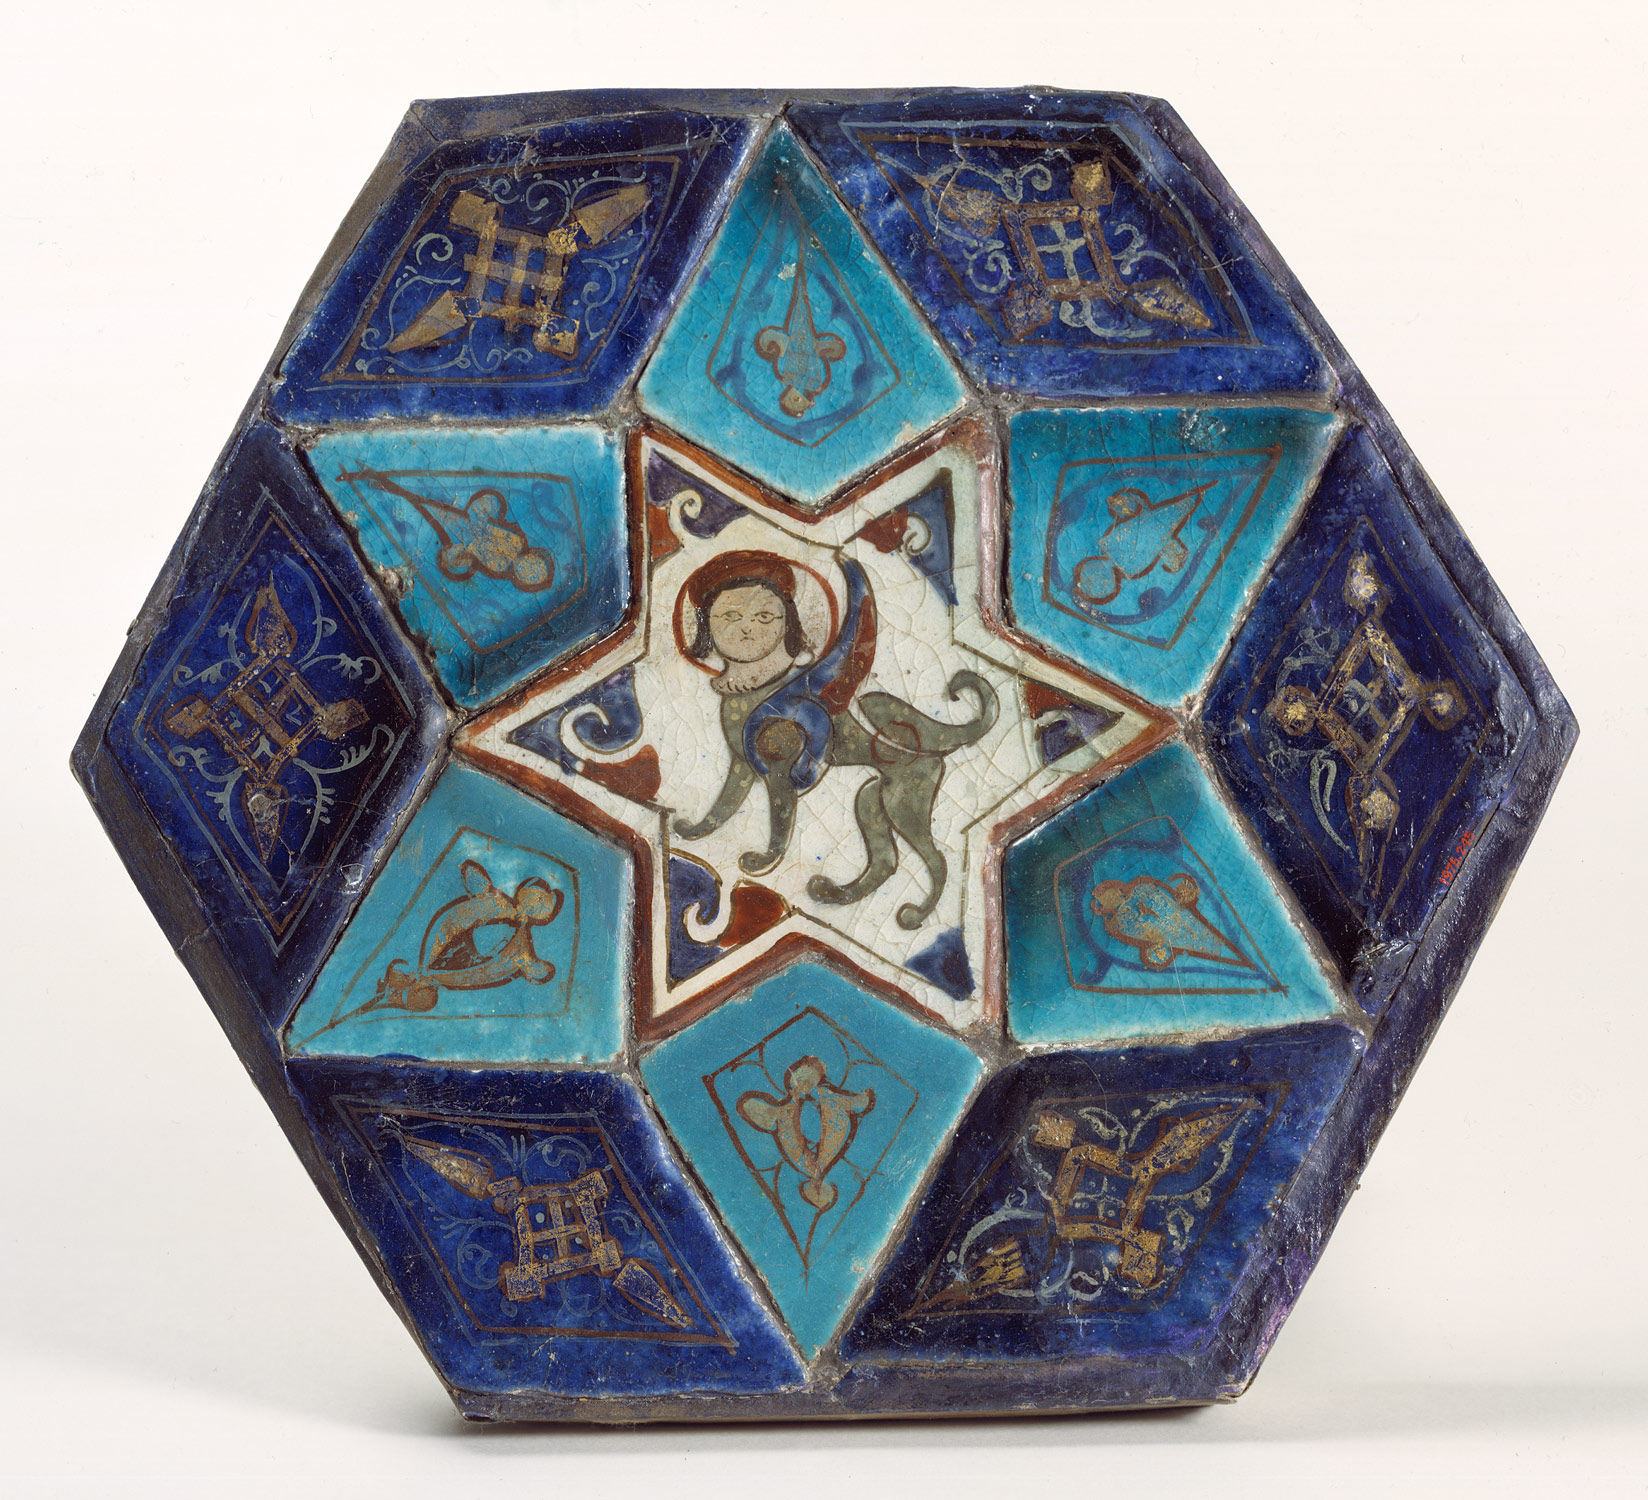 Hexagonal Tile Ensemble with Sphinx